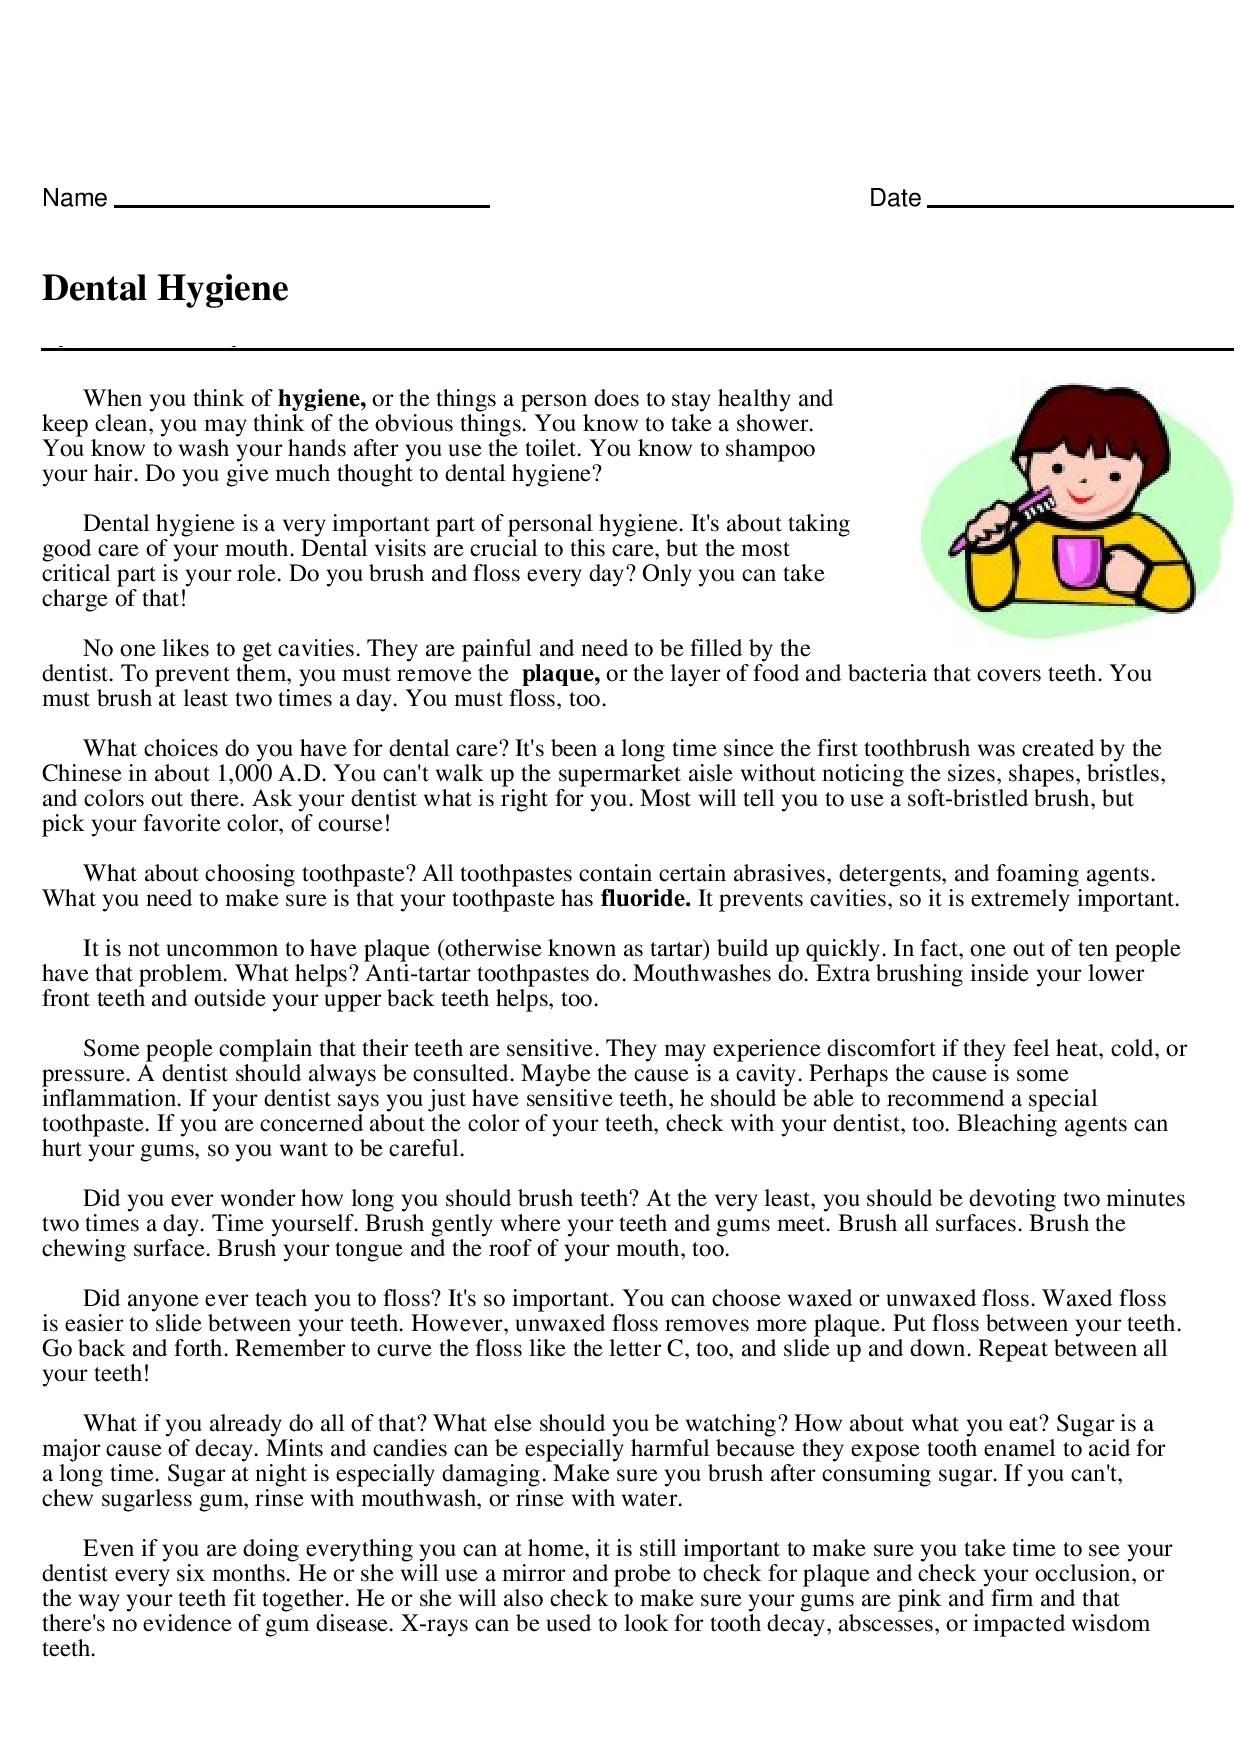 Dental Hygiene Routine Page 1 Jpg 1240 1754 Hygiene Routine How To Stay Healthy Keep It Cleaner